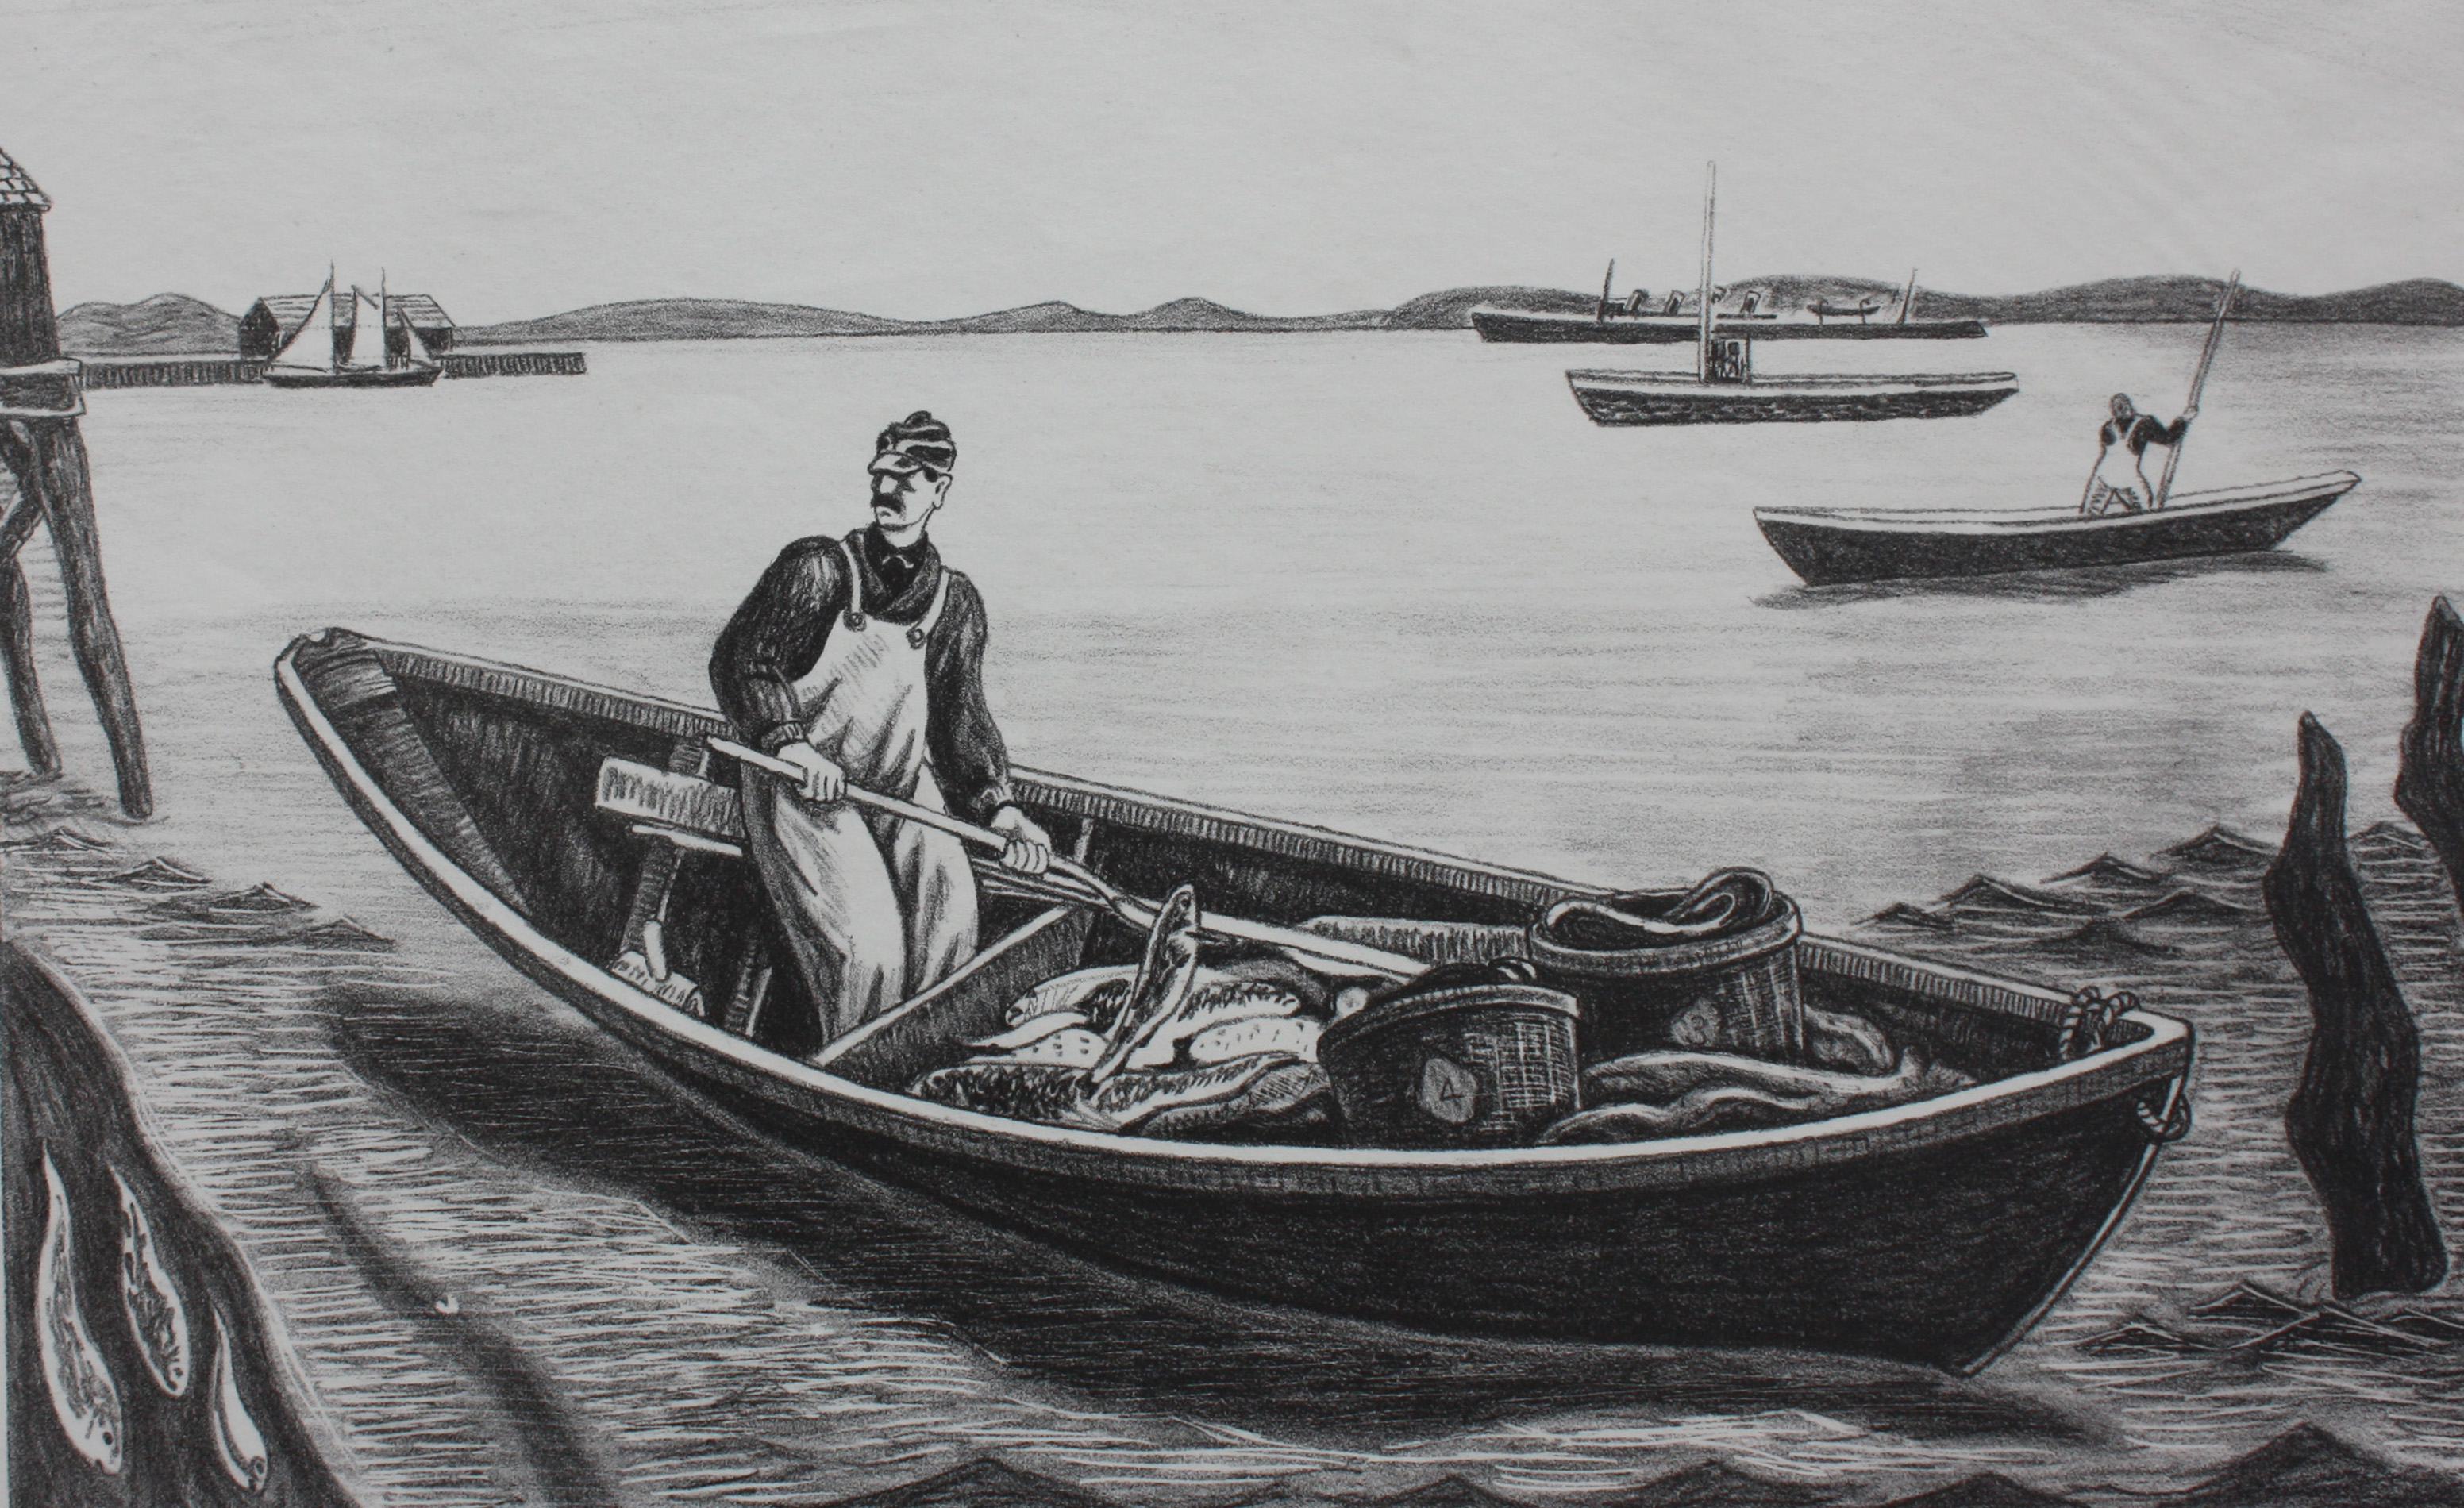 Untitled [Fisherman in Dory]